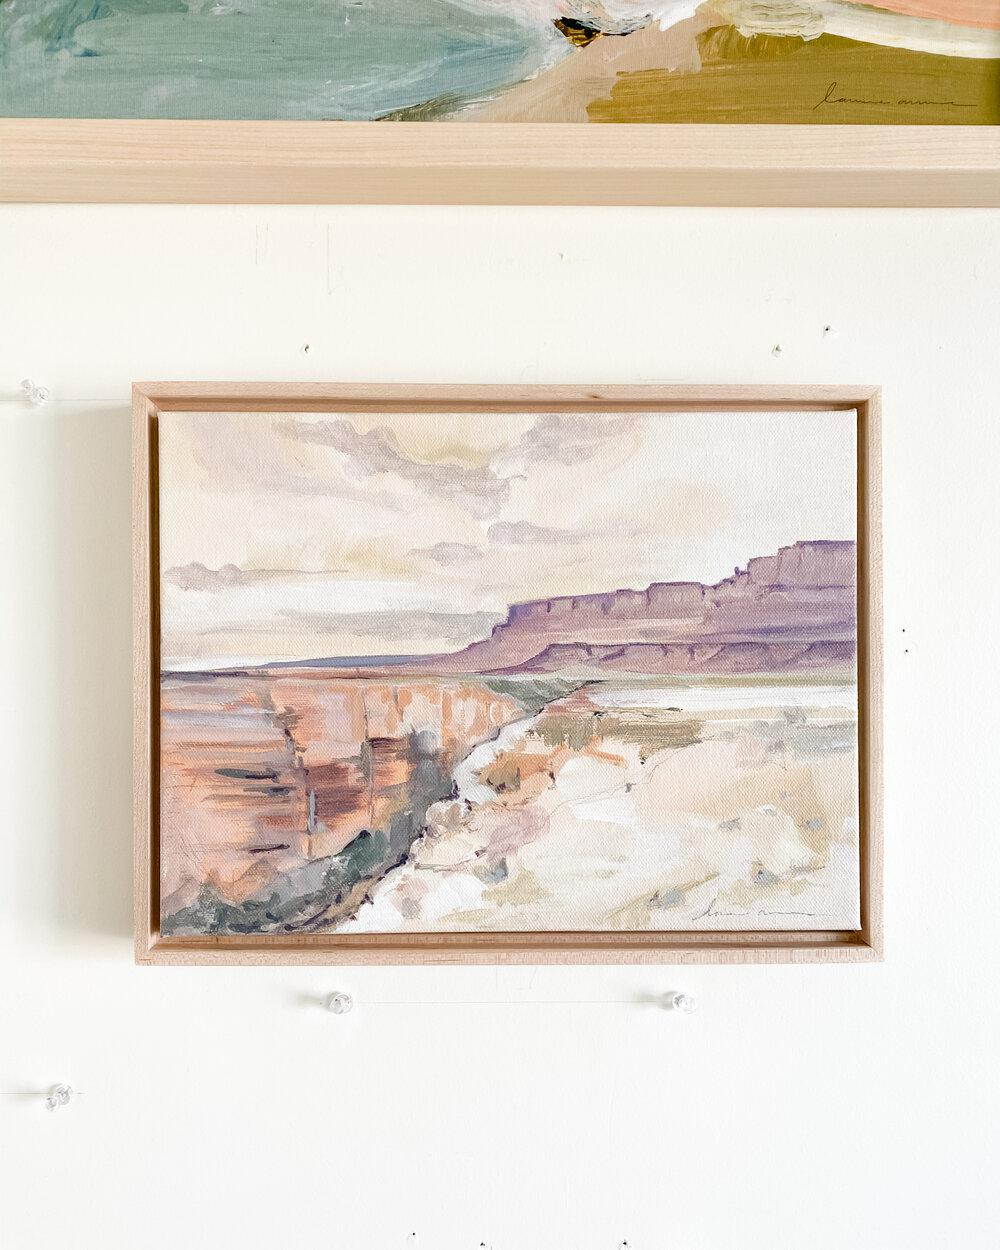 Marble Canyon Framed Original Painting 9x12